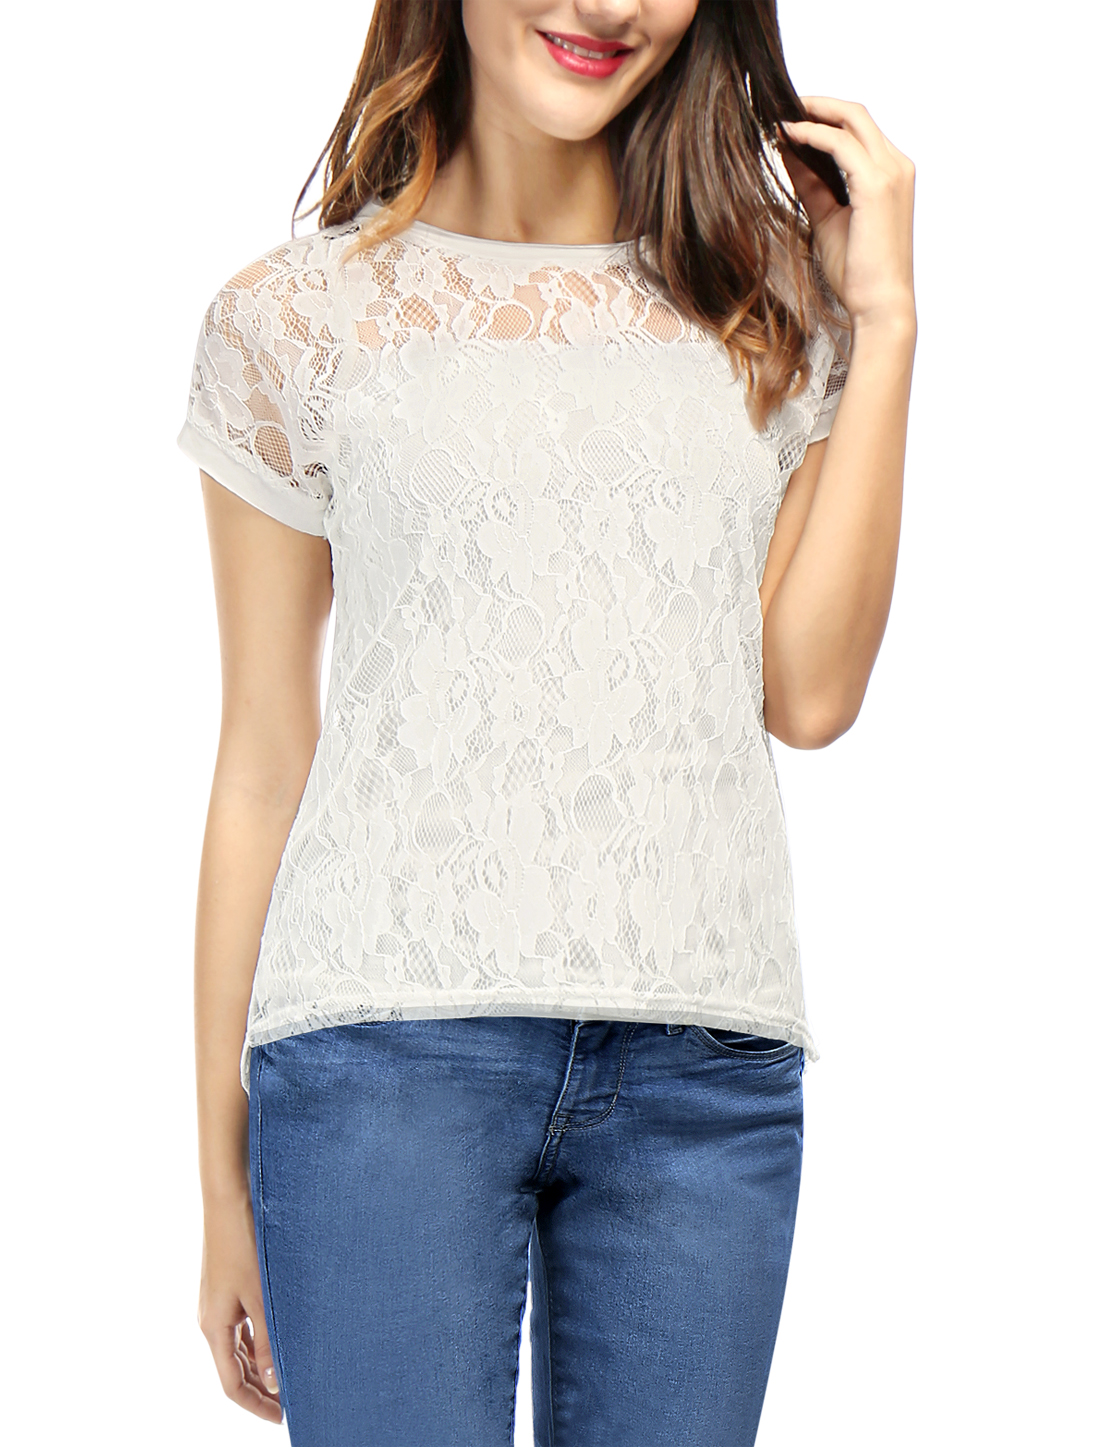 Women Curved Hem Sheer Short Sleeves Floral Lace Top White L